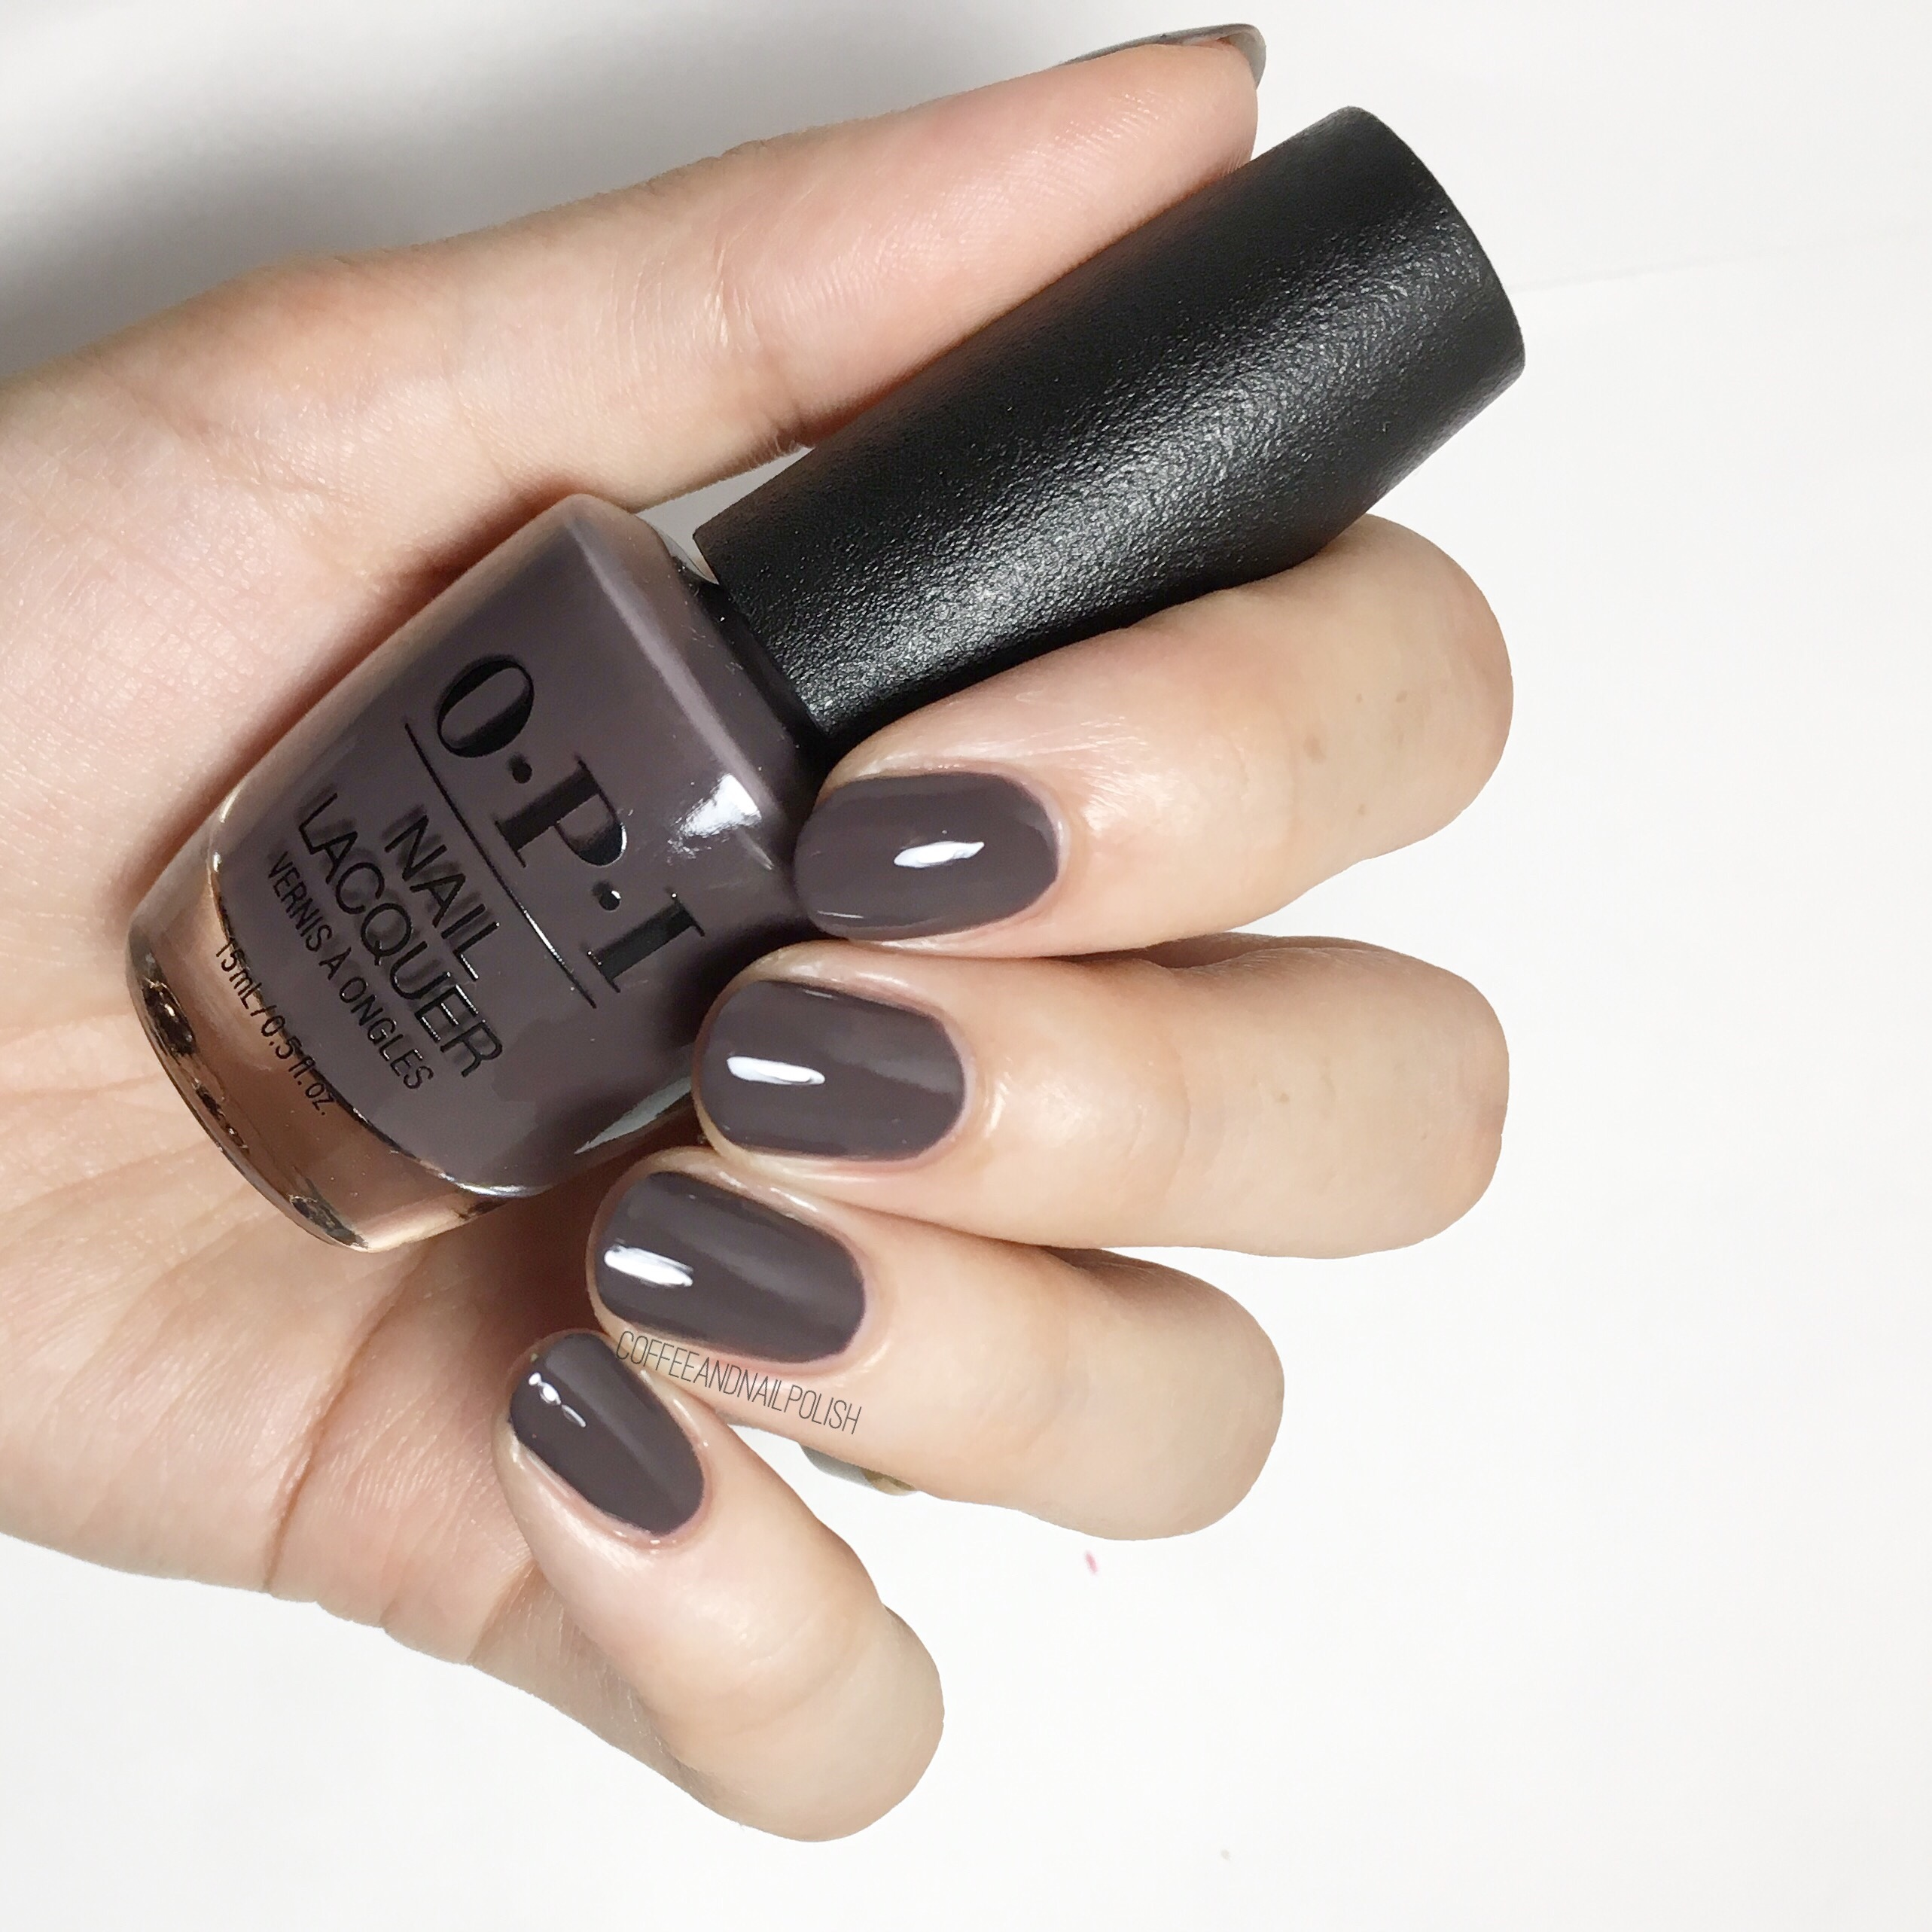 OPI Fall/Winter 2017 Iceland Collection Part 2 – Coffee & Nail Polish